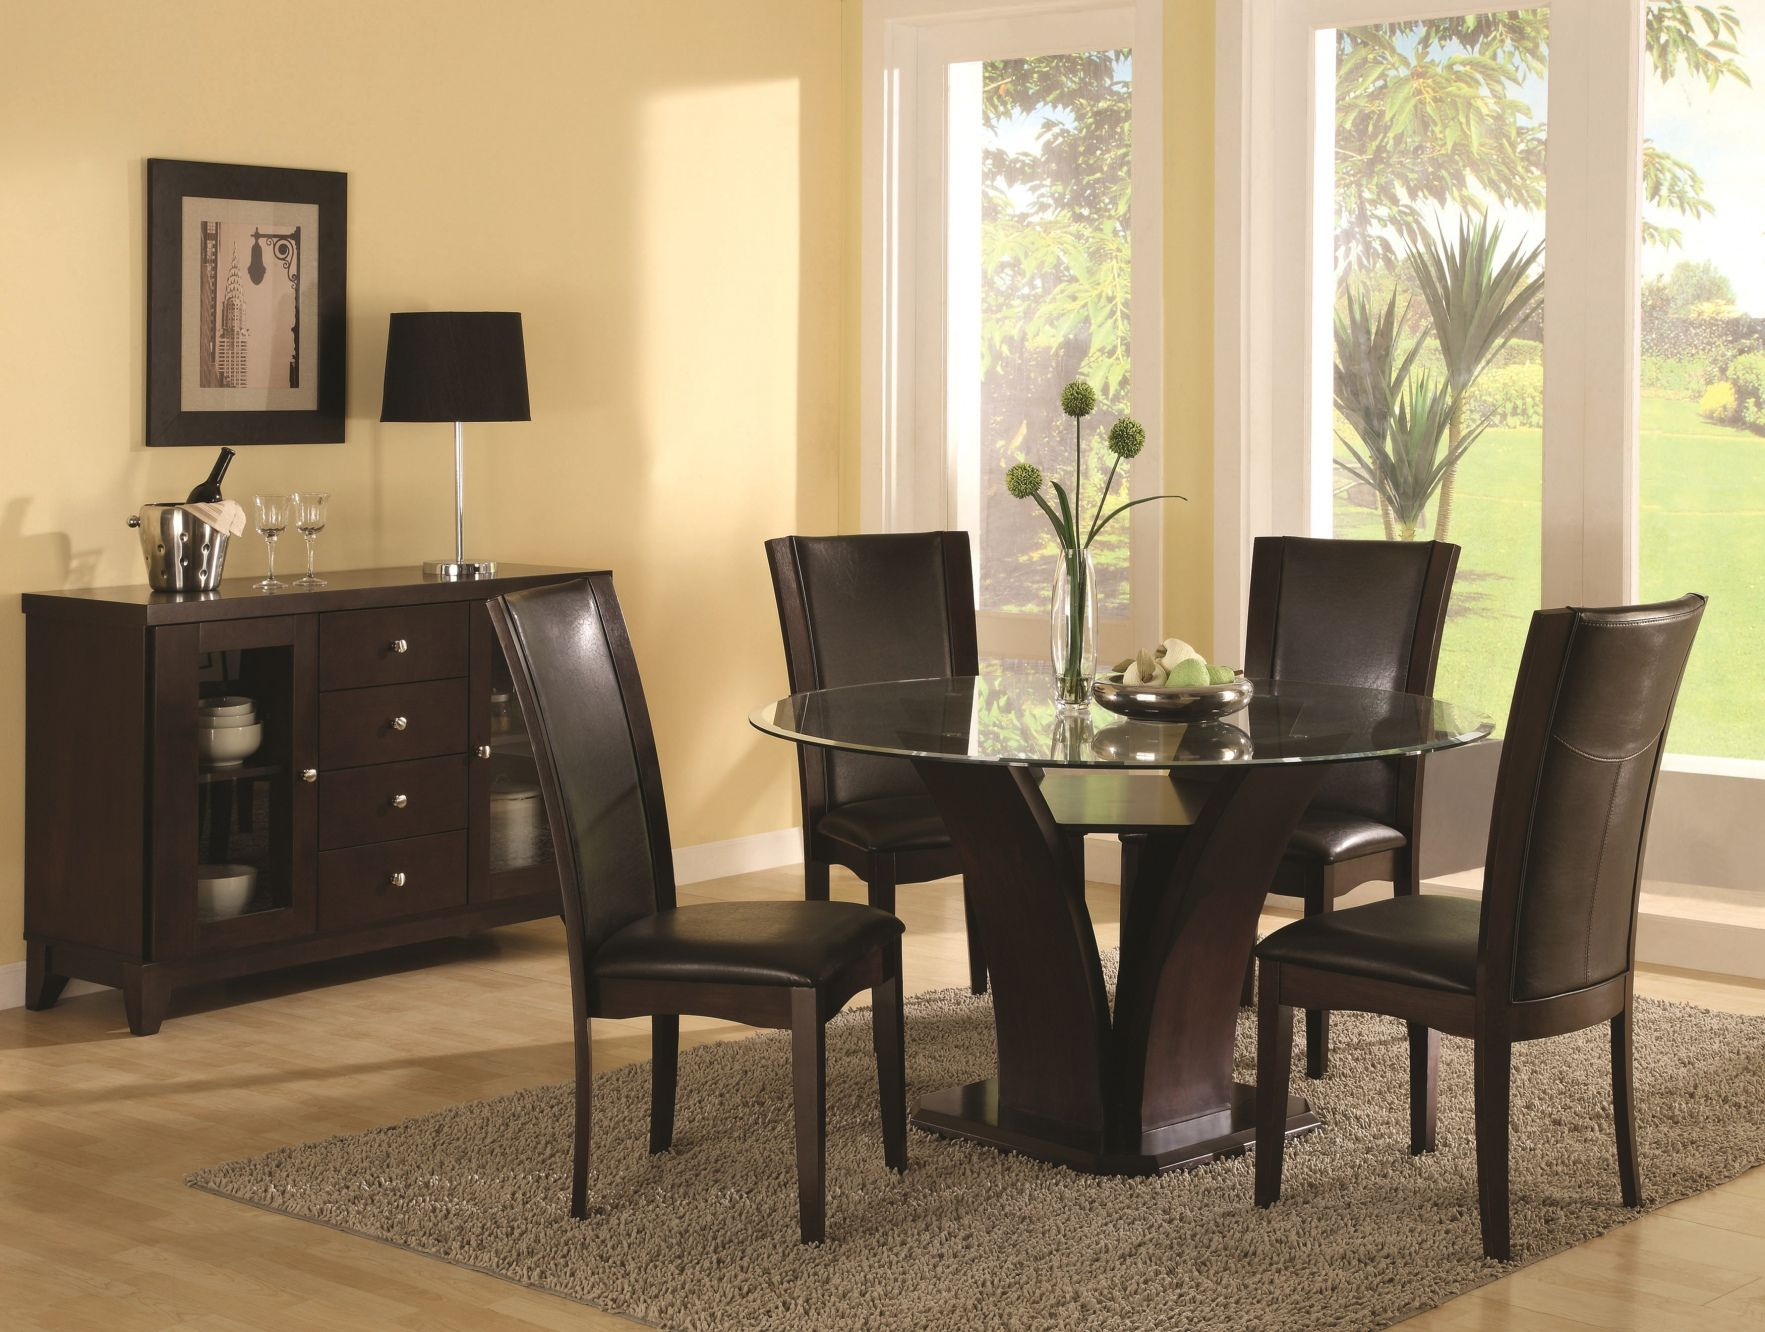 2019 Black Leather Chairs For Dining Table   Best Paint For Wood Furniture  Check More At